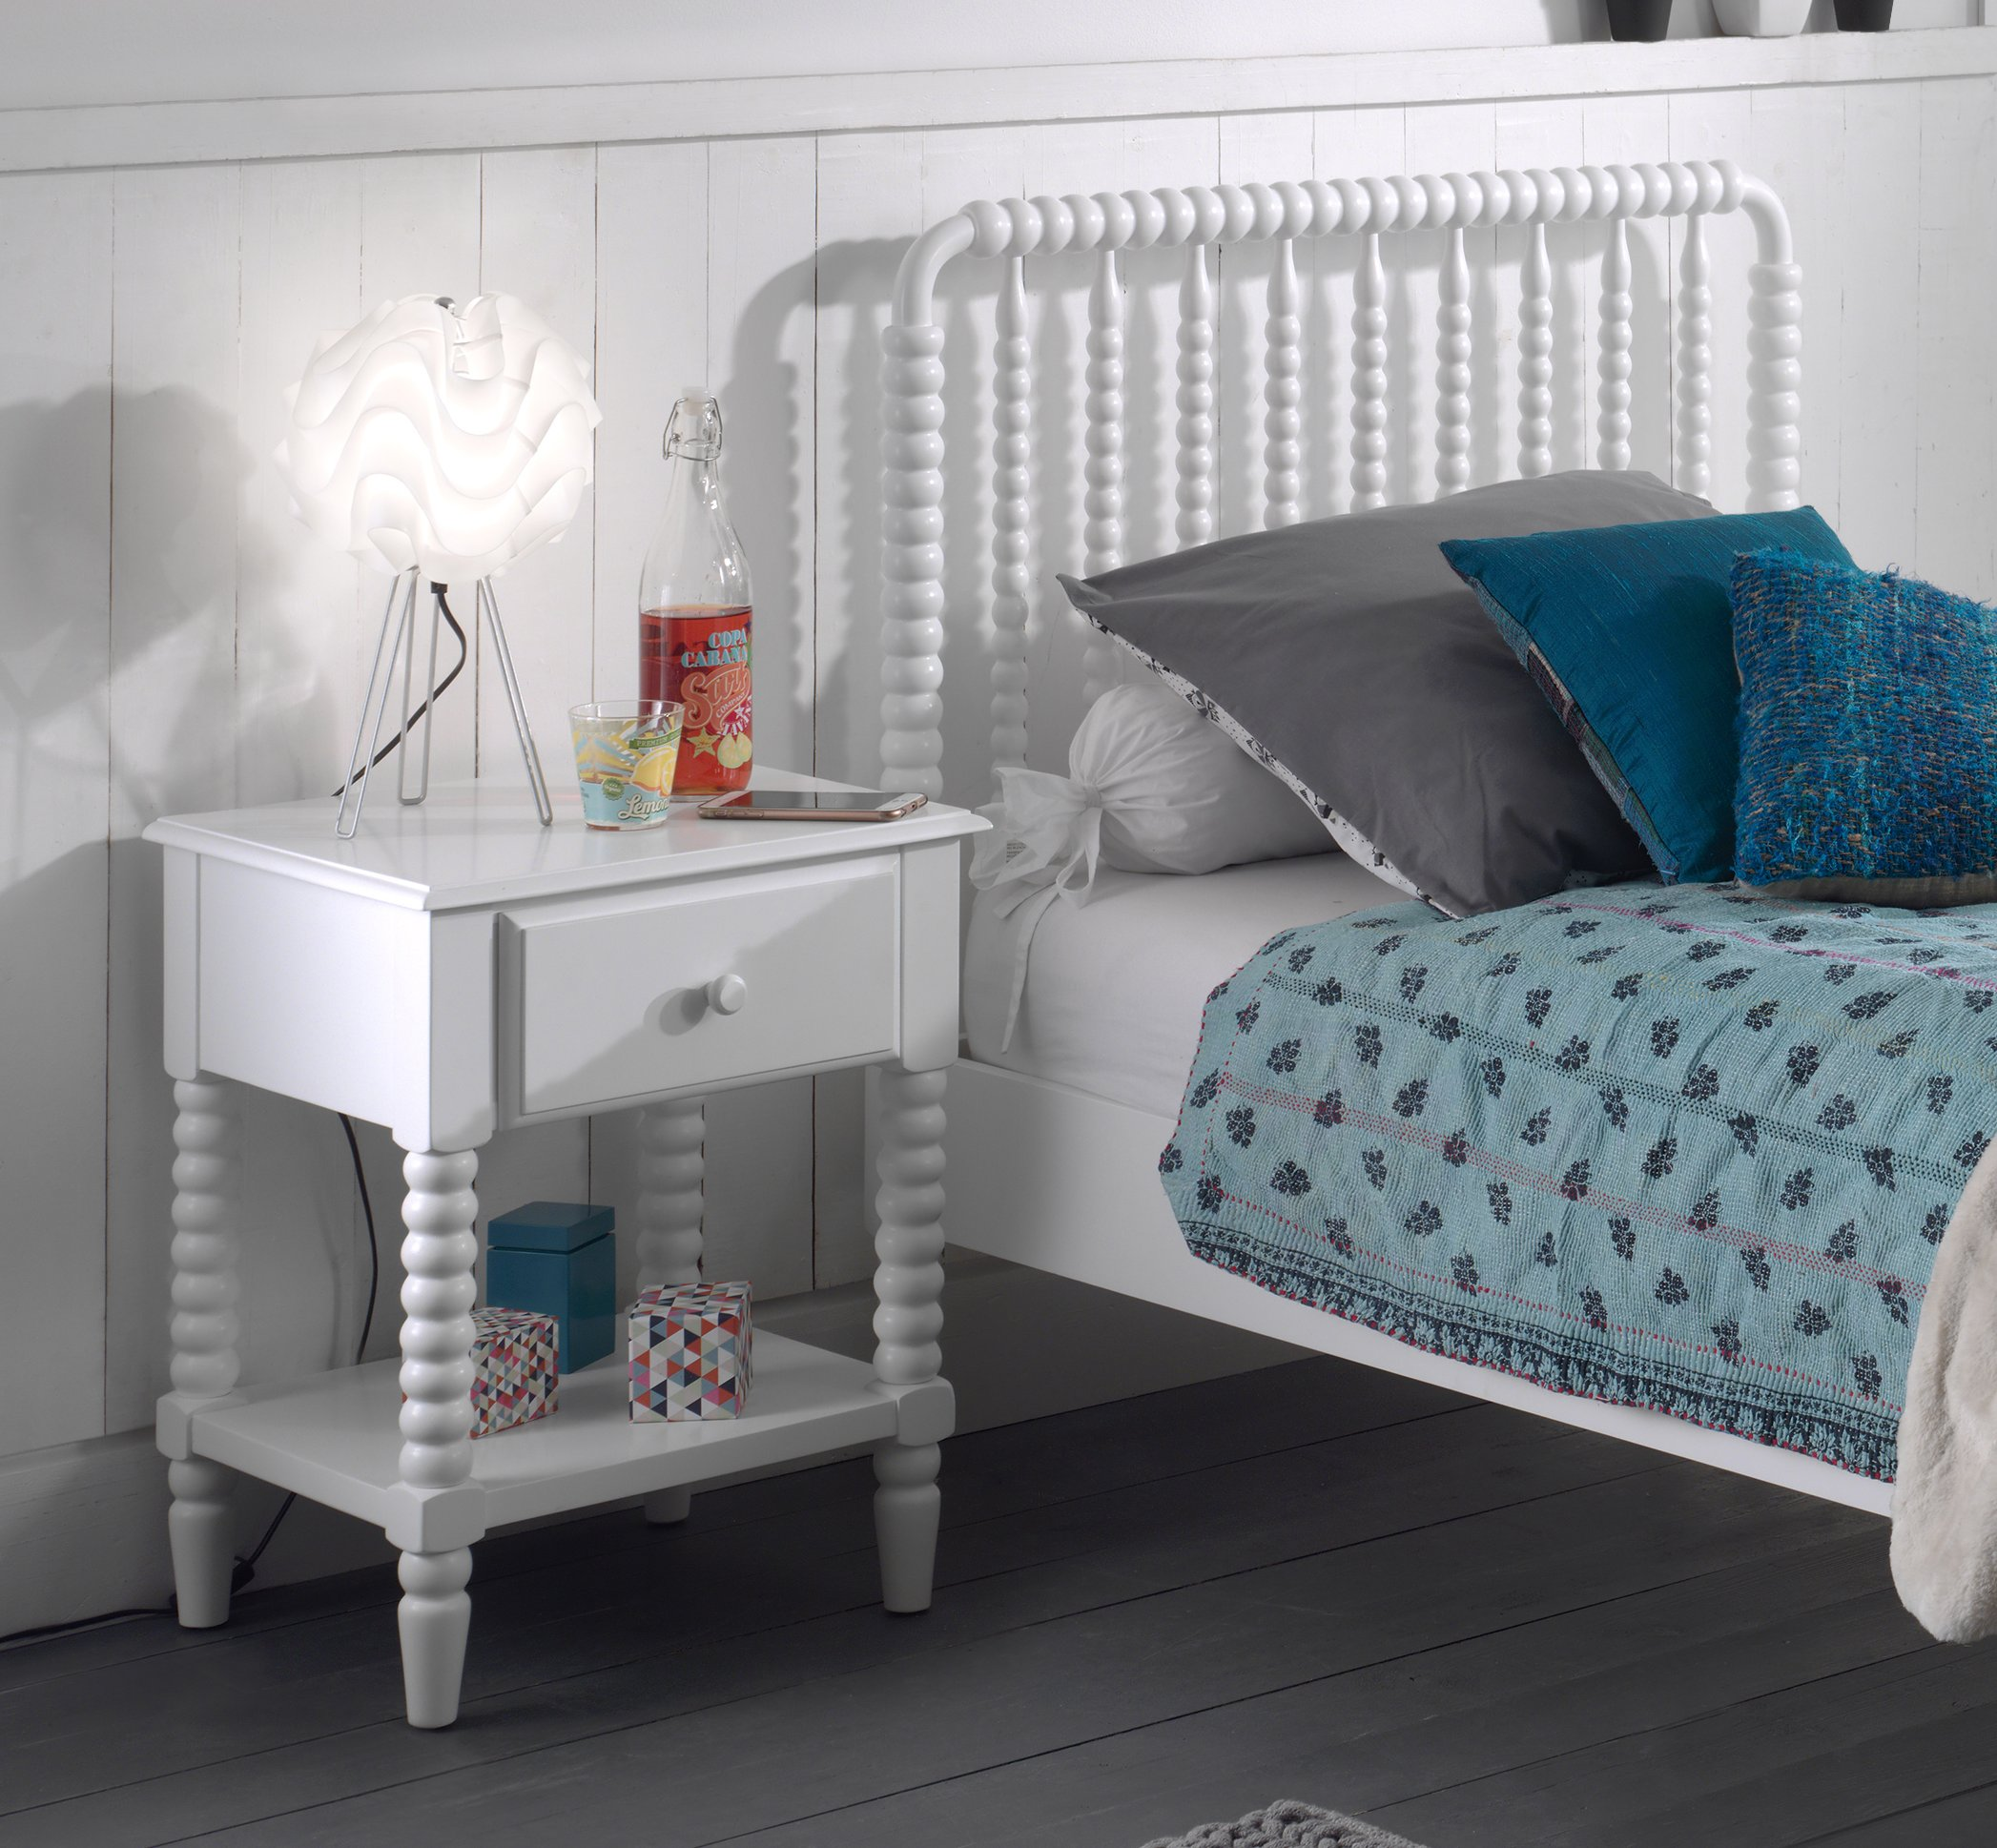 Alana Jenny Lind Spindle Bed And Nightstand Bedside Table